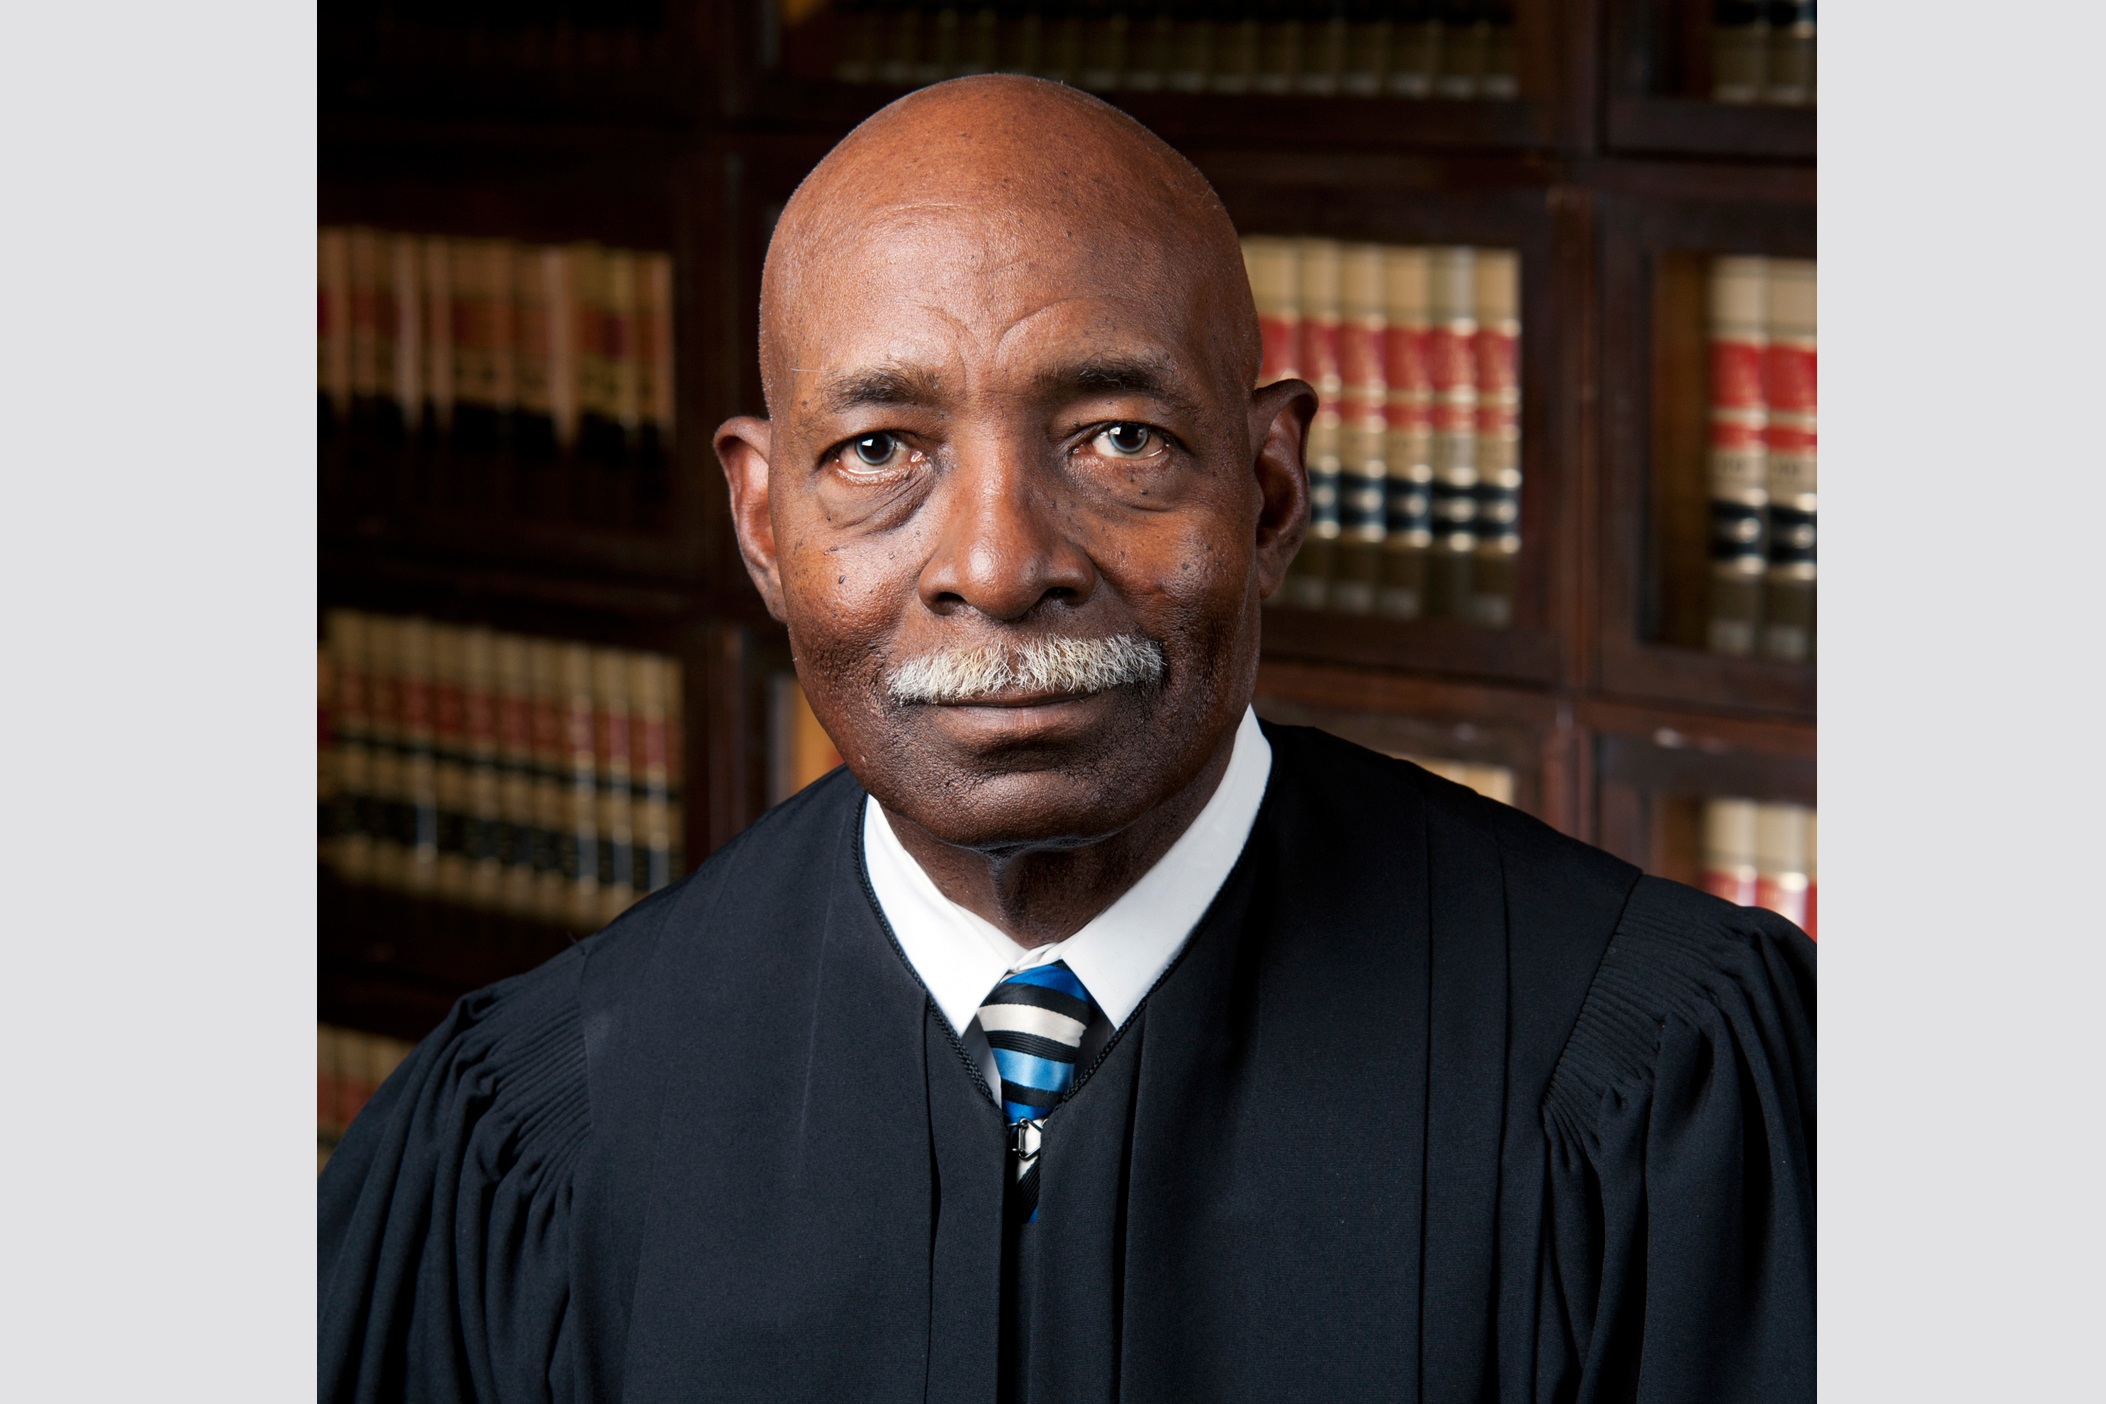 Indiana Supreme Court Justice Robert Rucker has served since 1999.